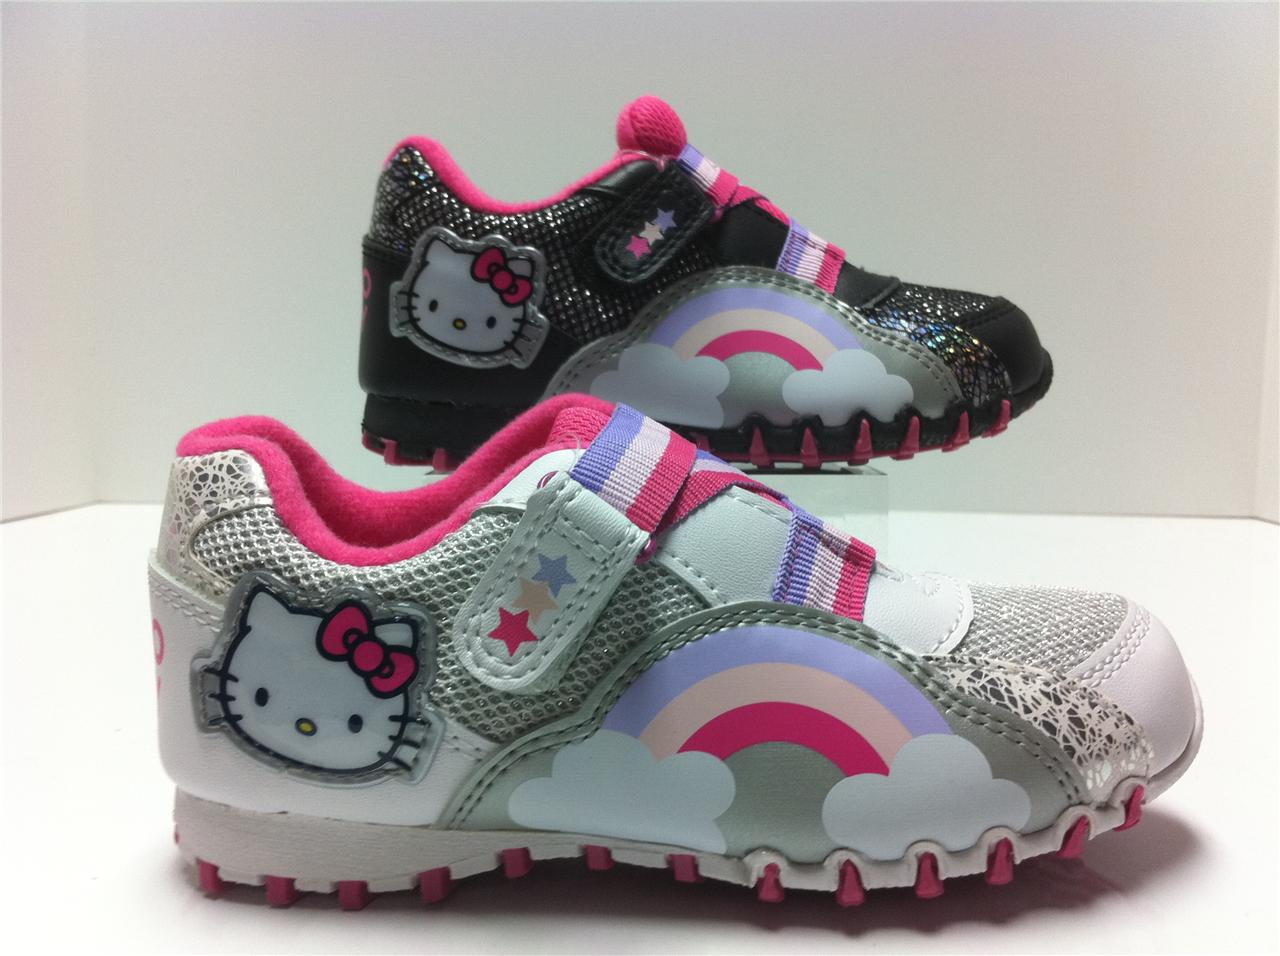 Find great deals on eBay for trainers girls. Shop with confidence.